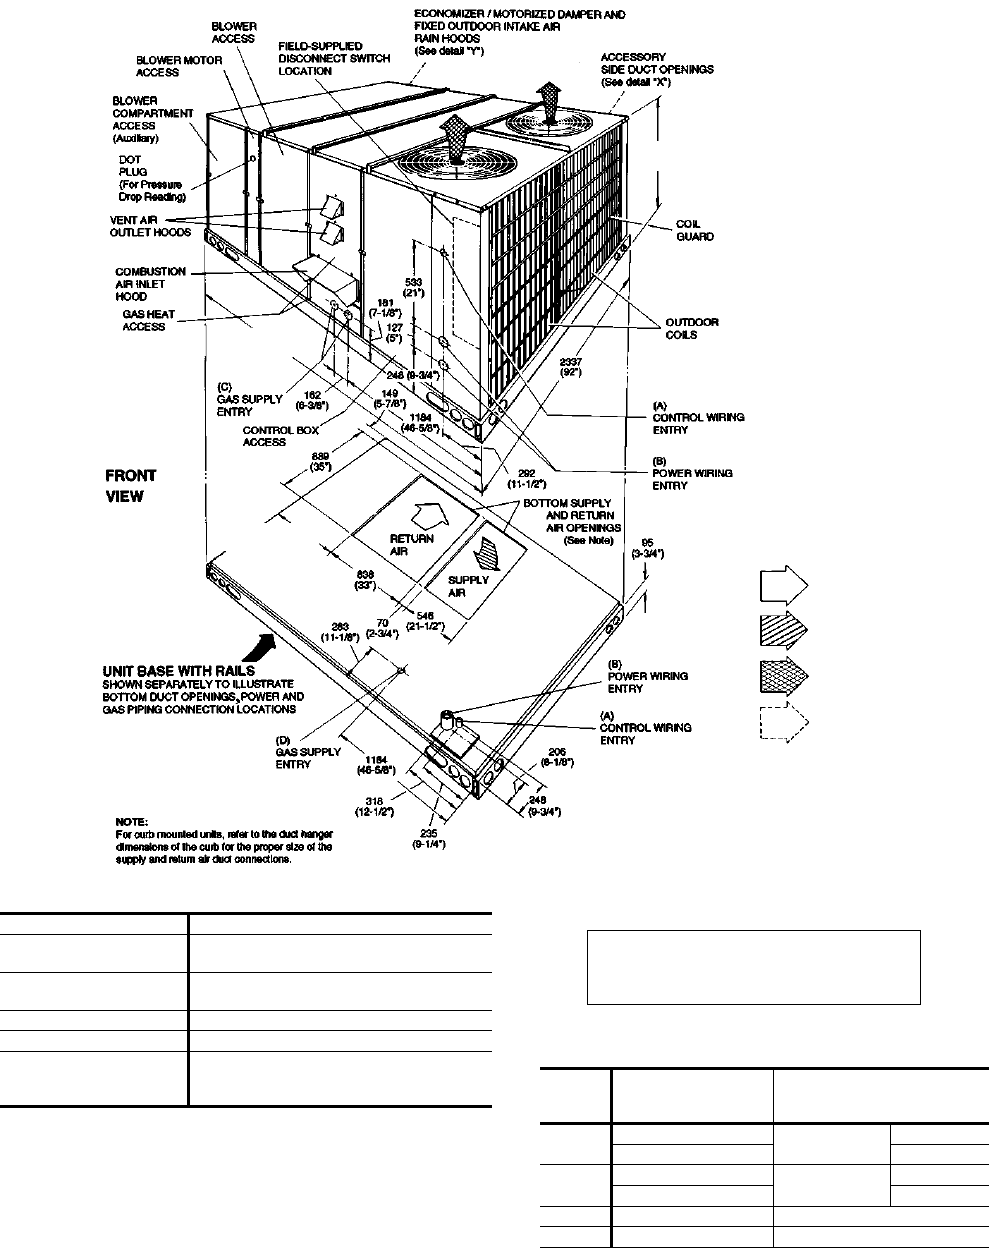 york d3cg wiring diagram york image wiring diagram page 16 of york air conditioner d3cg user guide manualsonline com on york d3cg wiring diagram